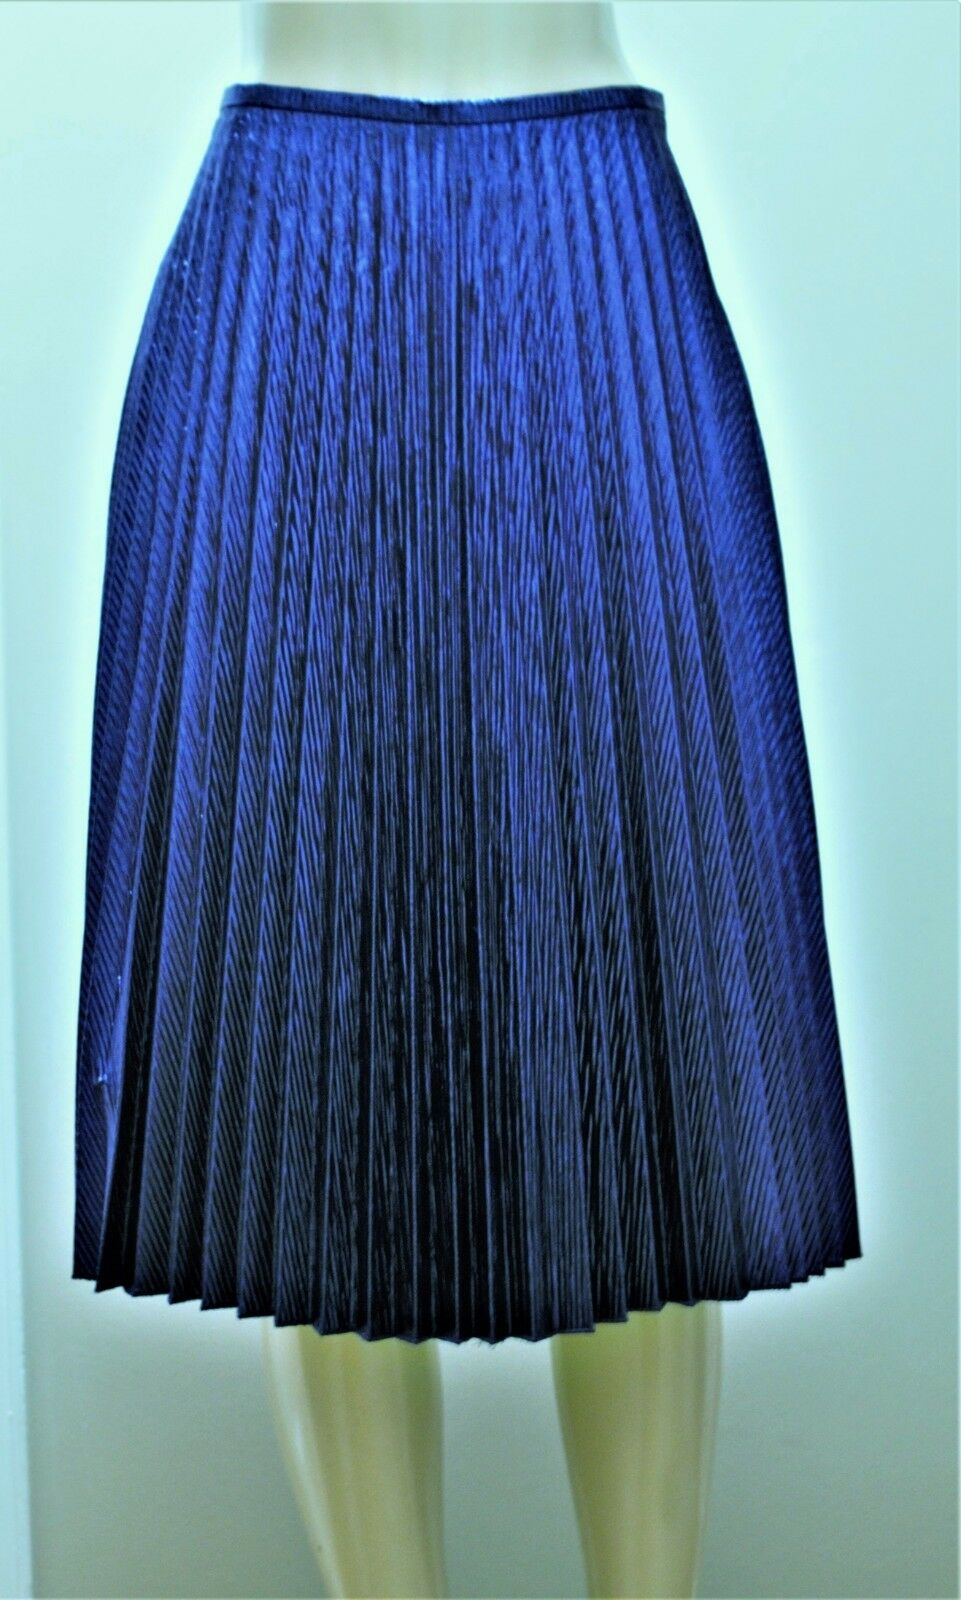 WORTH Deep True bluee Shiny Linear Jacquard Sunburst Pleated Skirt sz 8 NWT  448